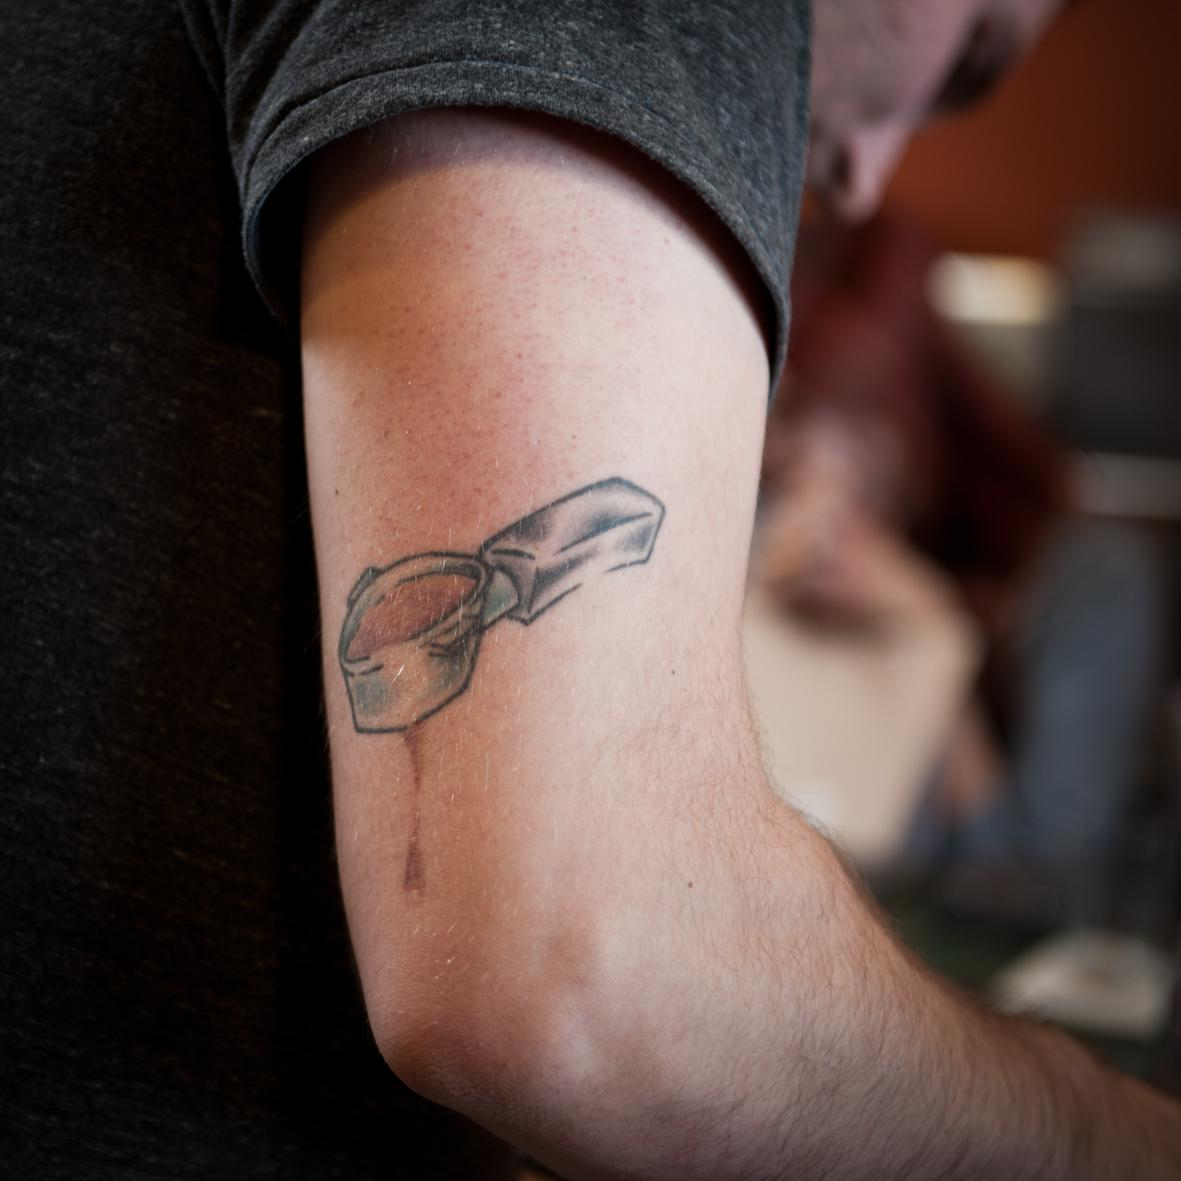 A tatoo about coffee. Baristas' level of dedication and passion is unbelievable. ©ChiaraCeolin2013